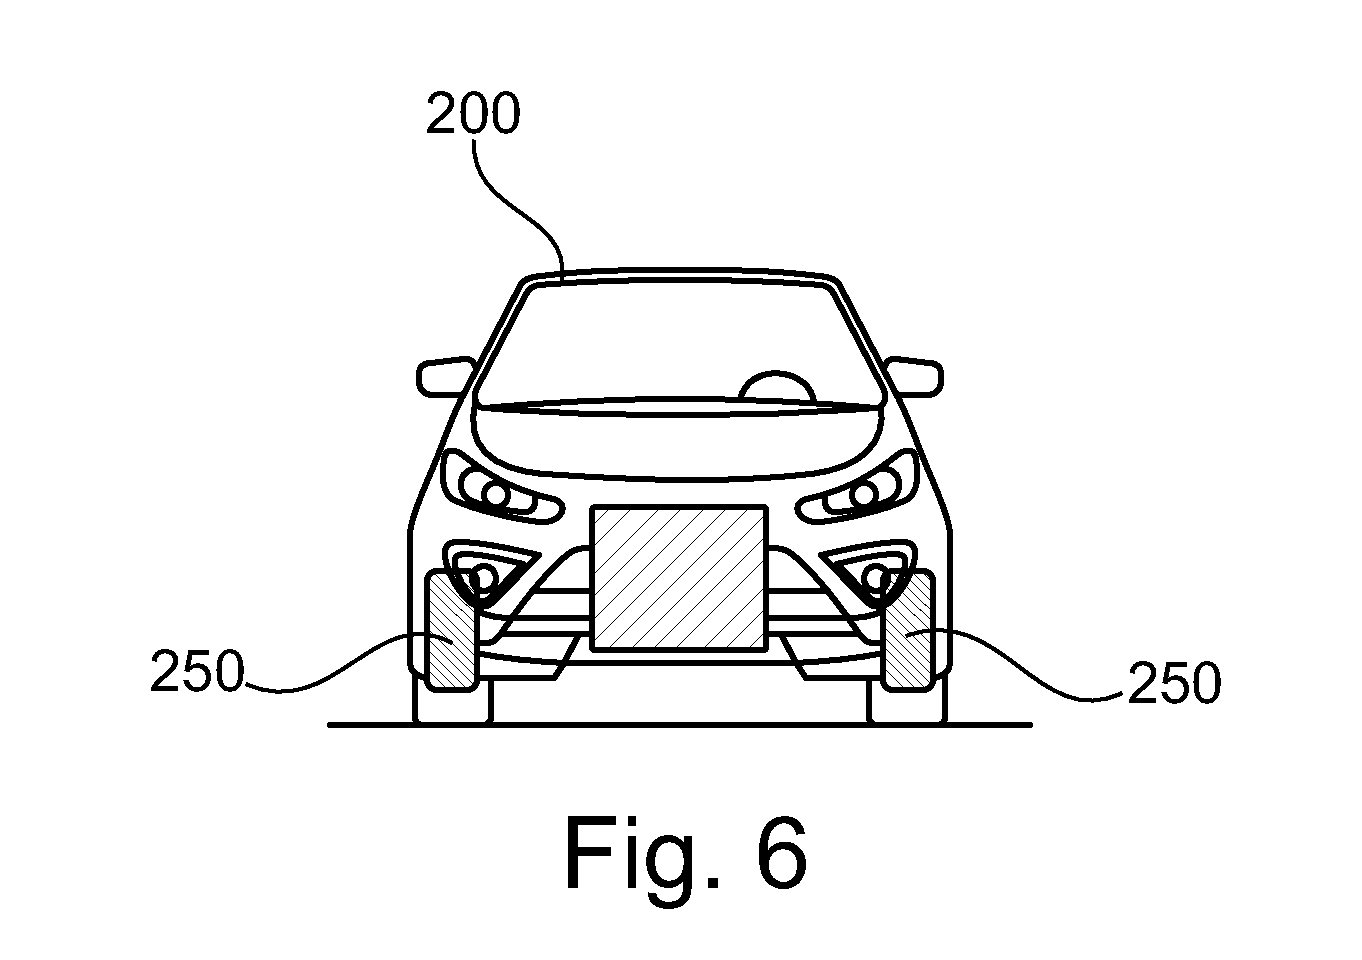 Ford Patents Car With Deployable Motorcycle